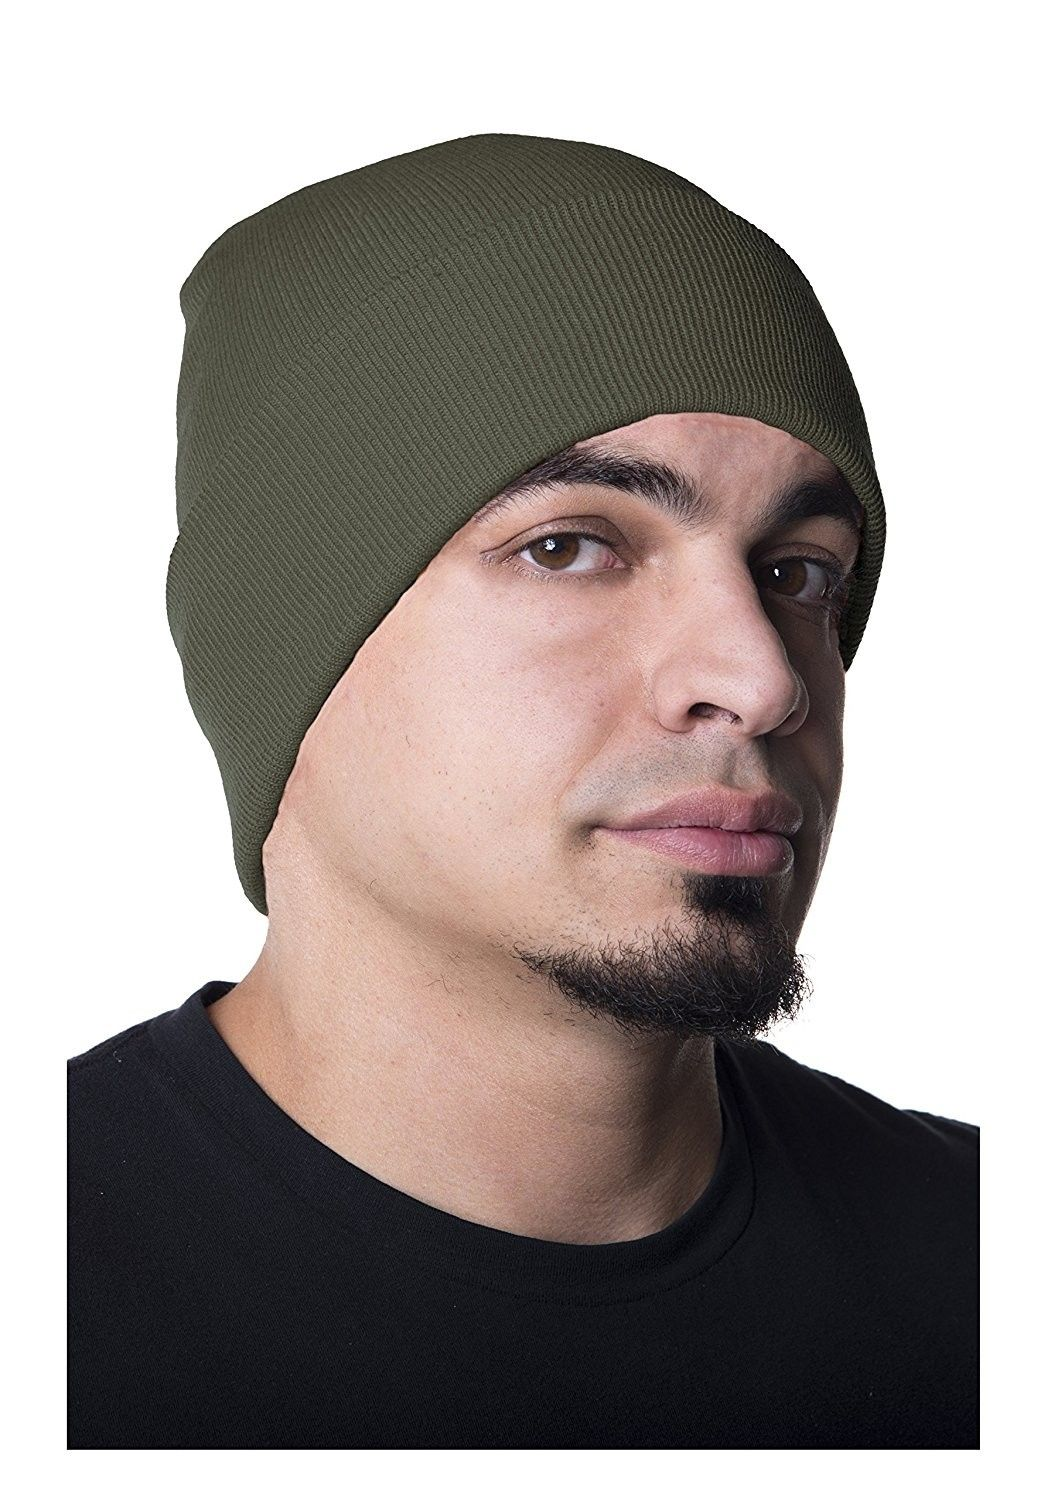 a9e6ec7820e Beanie · Men Hats · 100% Fine Wool Watch Cap - Olive Drab - C912NUV5YD9 -  Hats  amp  Caps